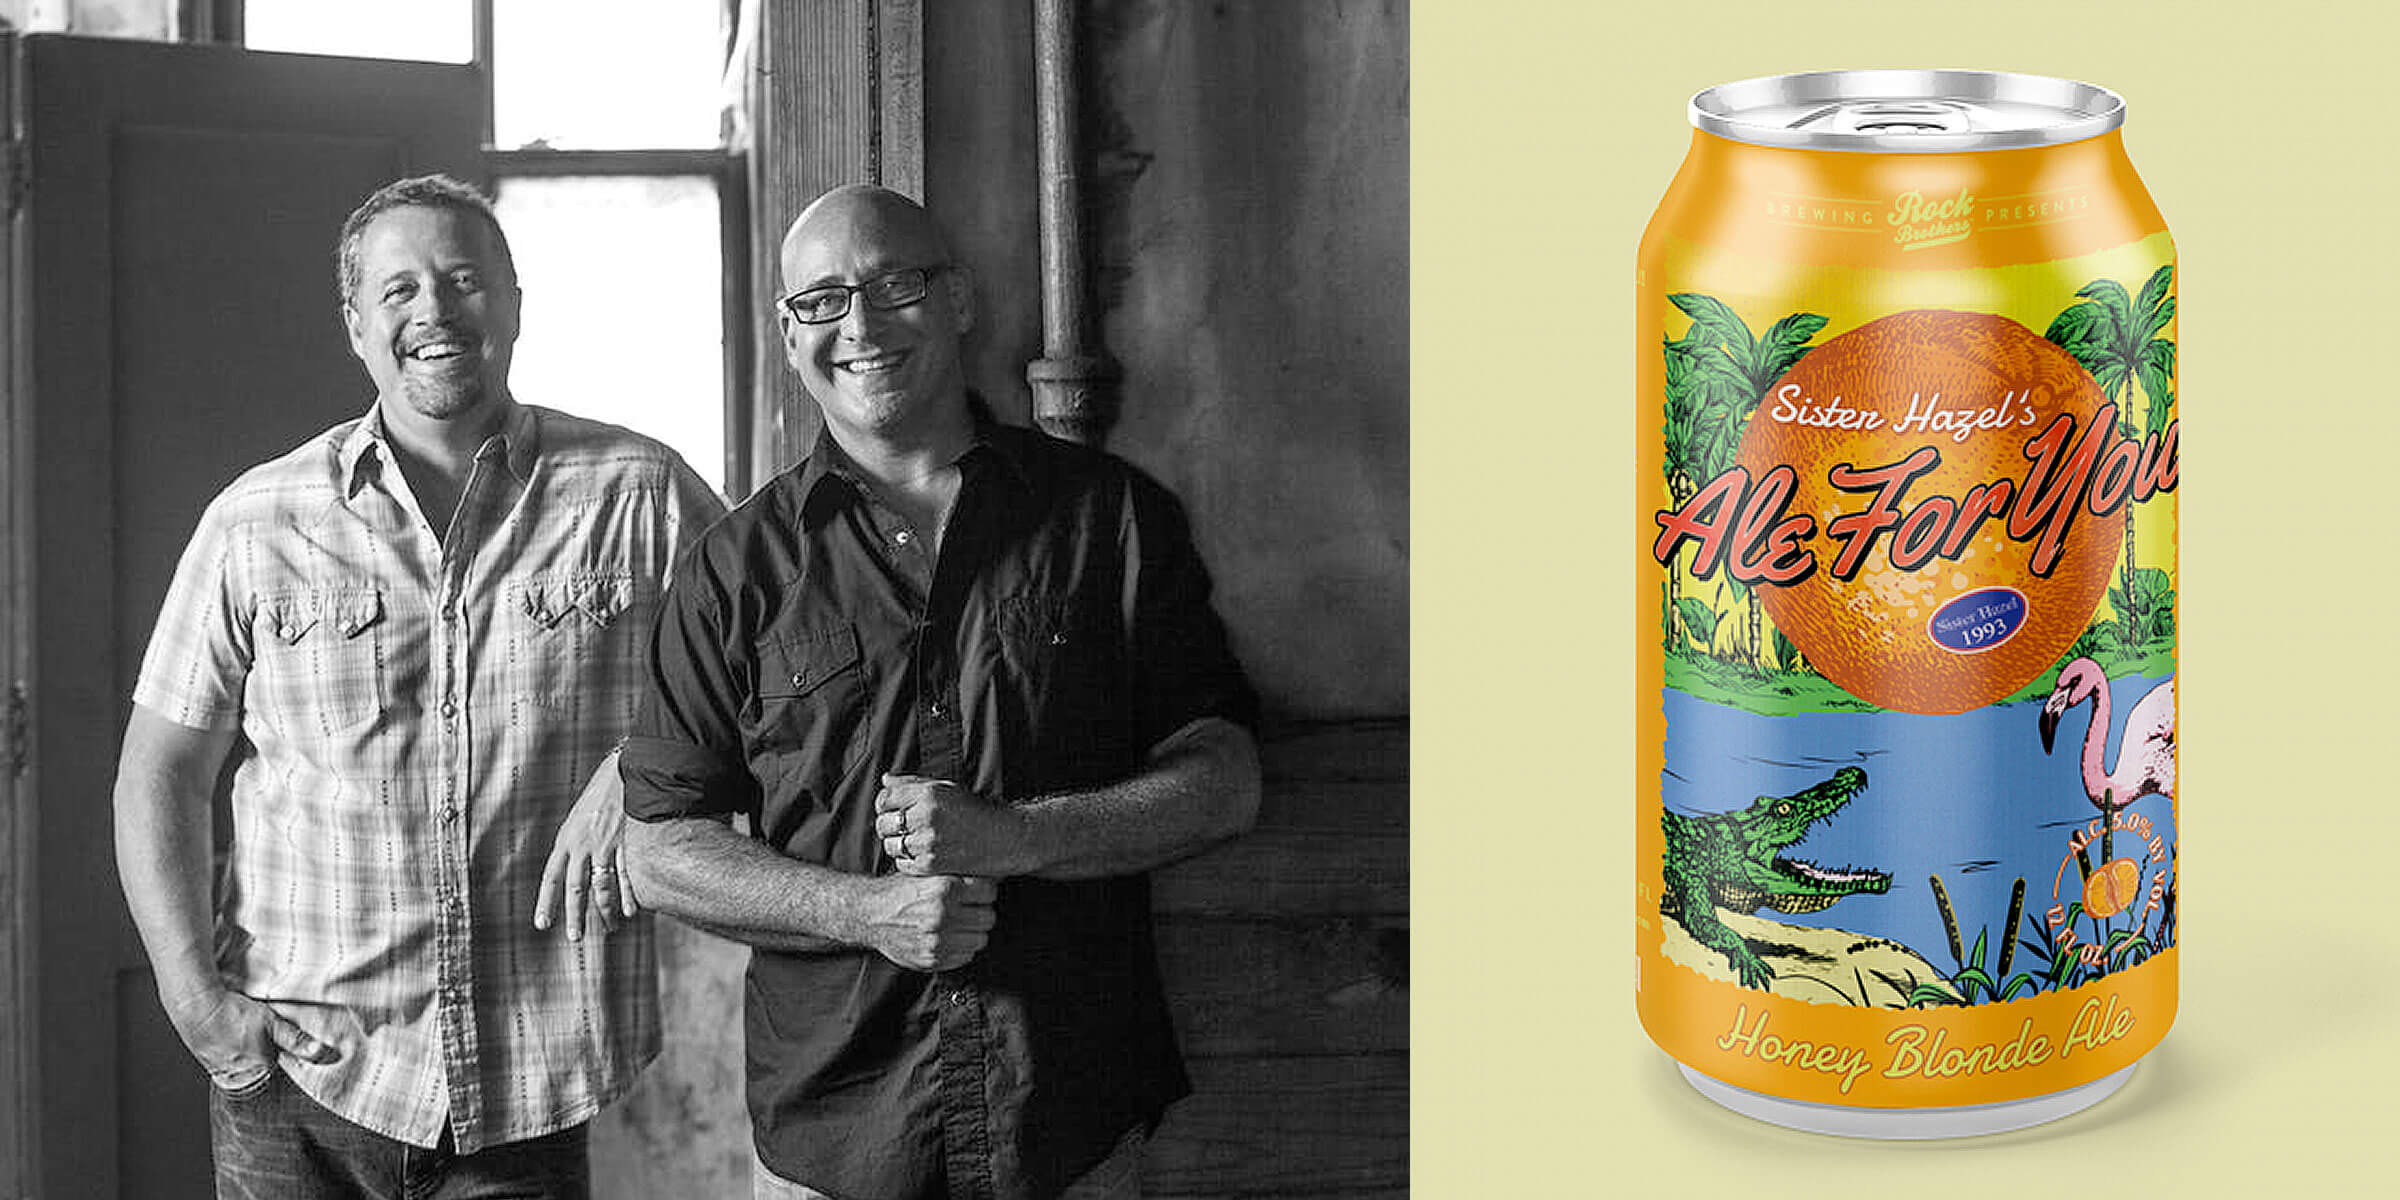 Platinum-selling alt-rock band Sister Hazel and Rock Brothers Brewing out of Tampa, Florida, have collaborated to bring that perfect Ale for You!